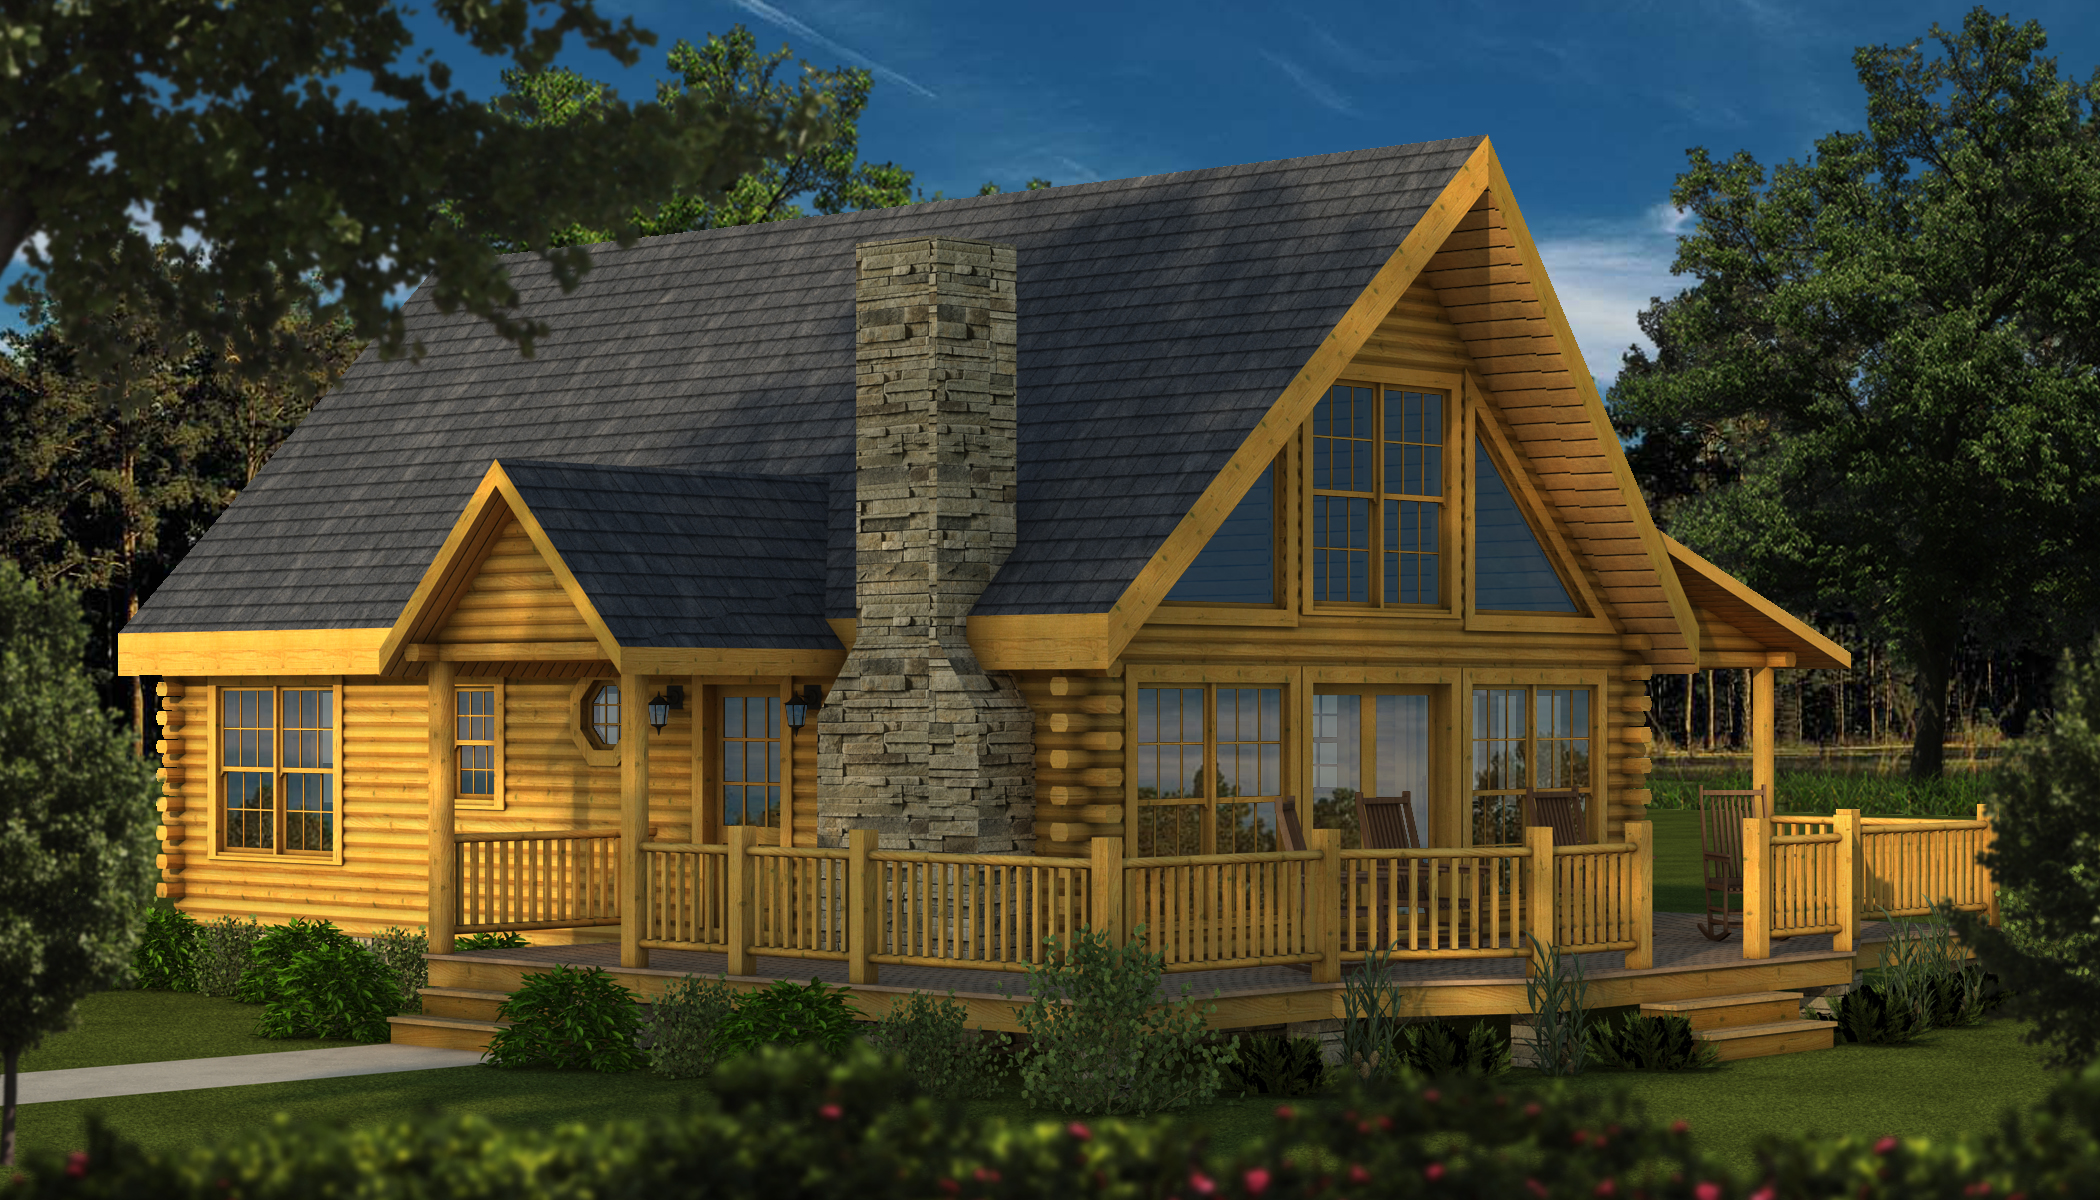 Rockbridge 2 plans information southland log homes for Cabin models plans